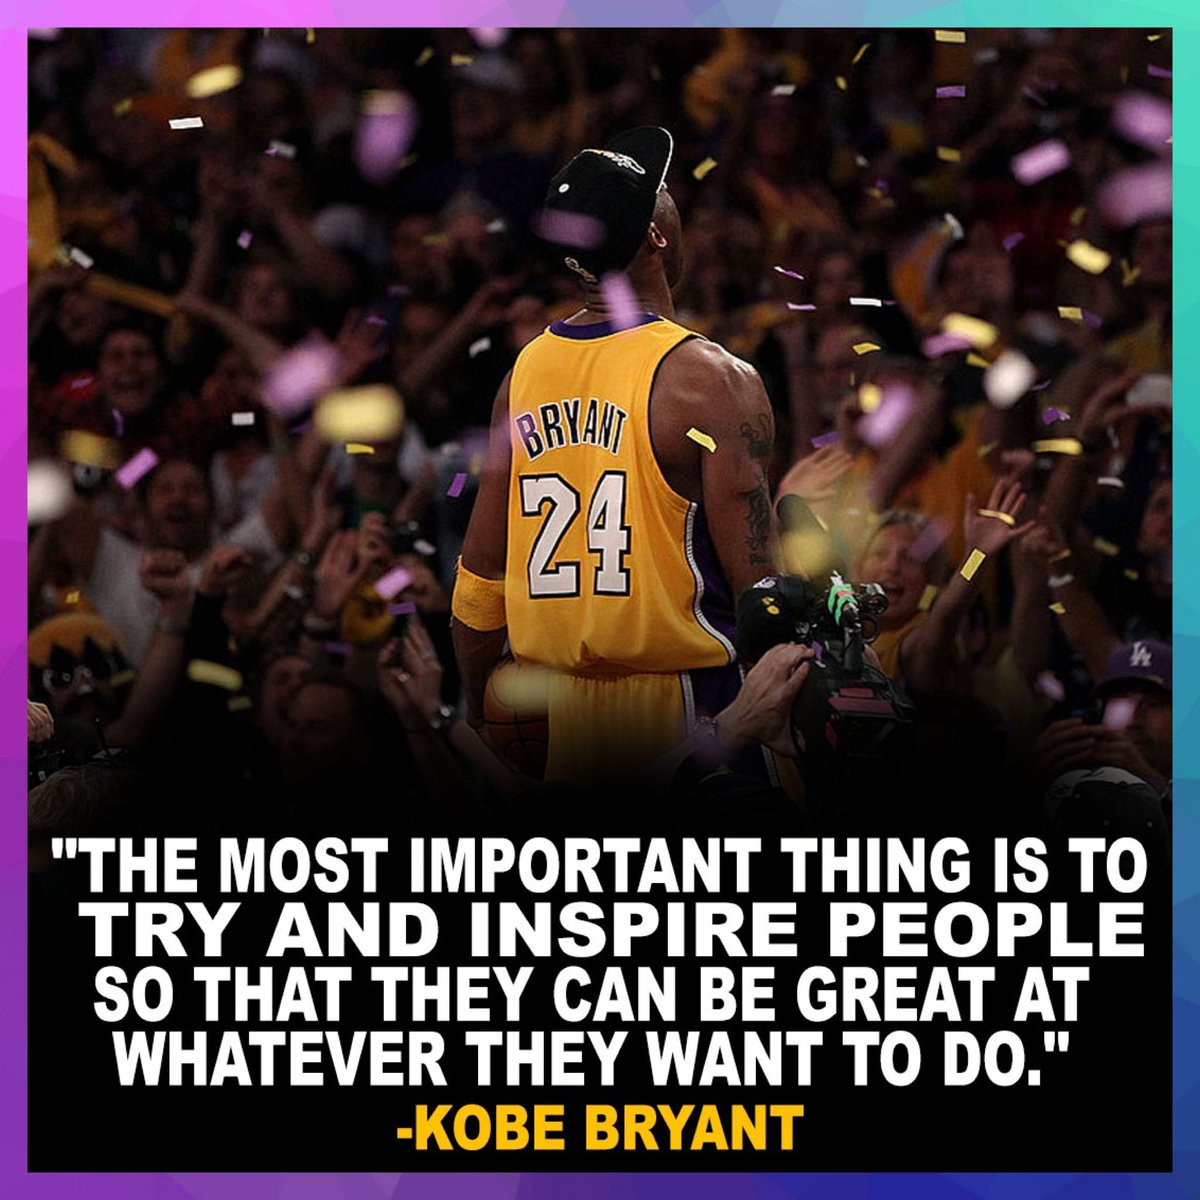 Rest In Paradise #KobeBryant 💜💛 a tribute to #Kobe will be playing at 9:45A PST.  . . .  Rest in peace to everyone involved in the tragedy Gianna Bryant, John, Keri and Alyssa Altobelli, Christina Mauser, Sarah and Payton Chester and Ara Zobayan 🙏